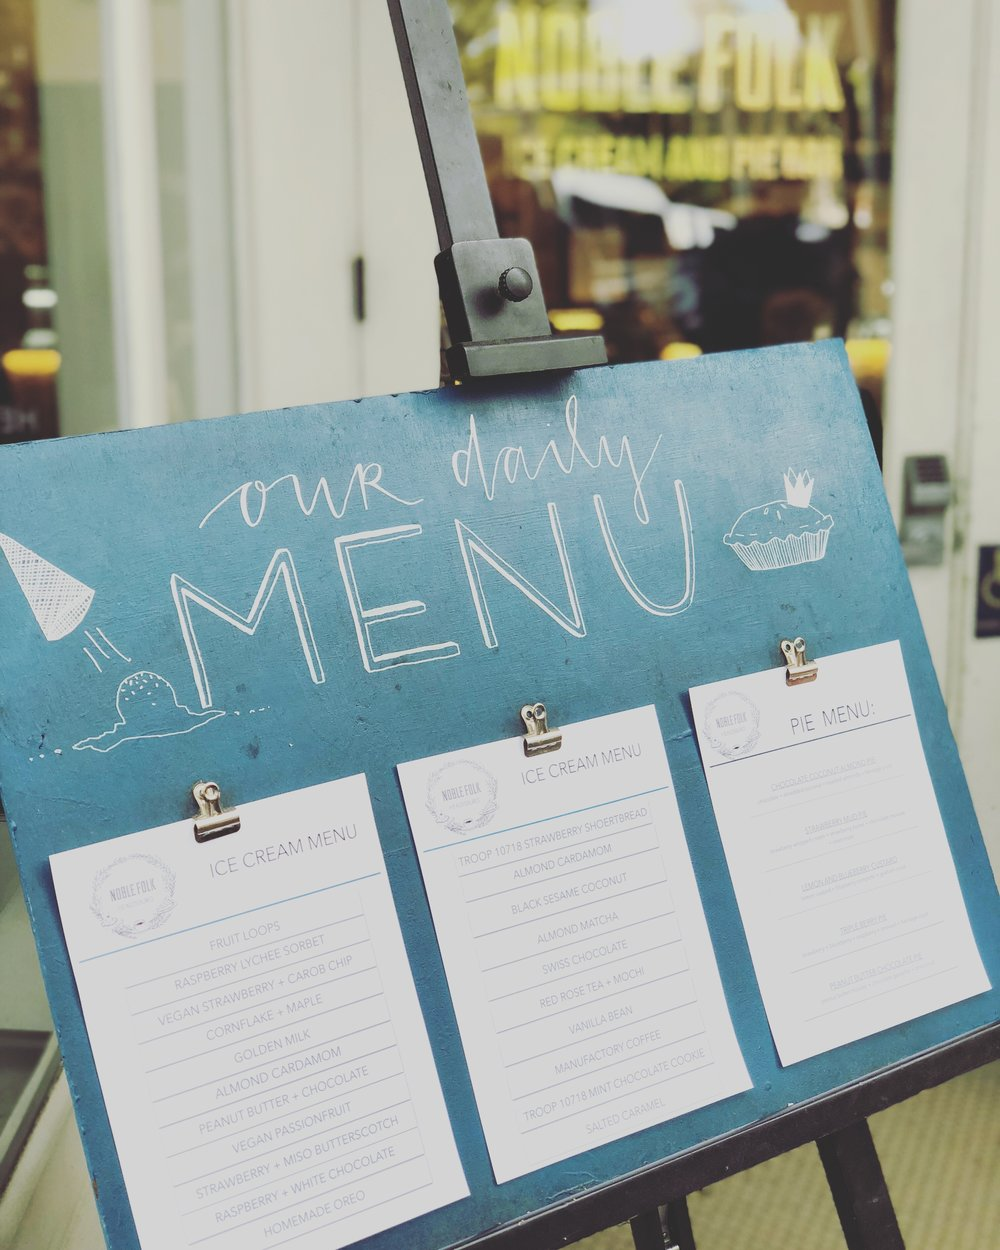 Local, hand-crafted ice cream and pies at Noble Folk